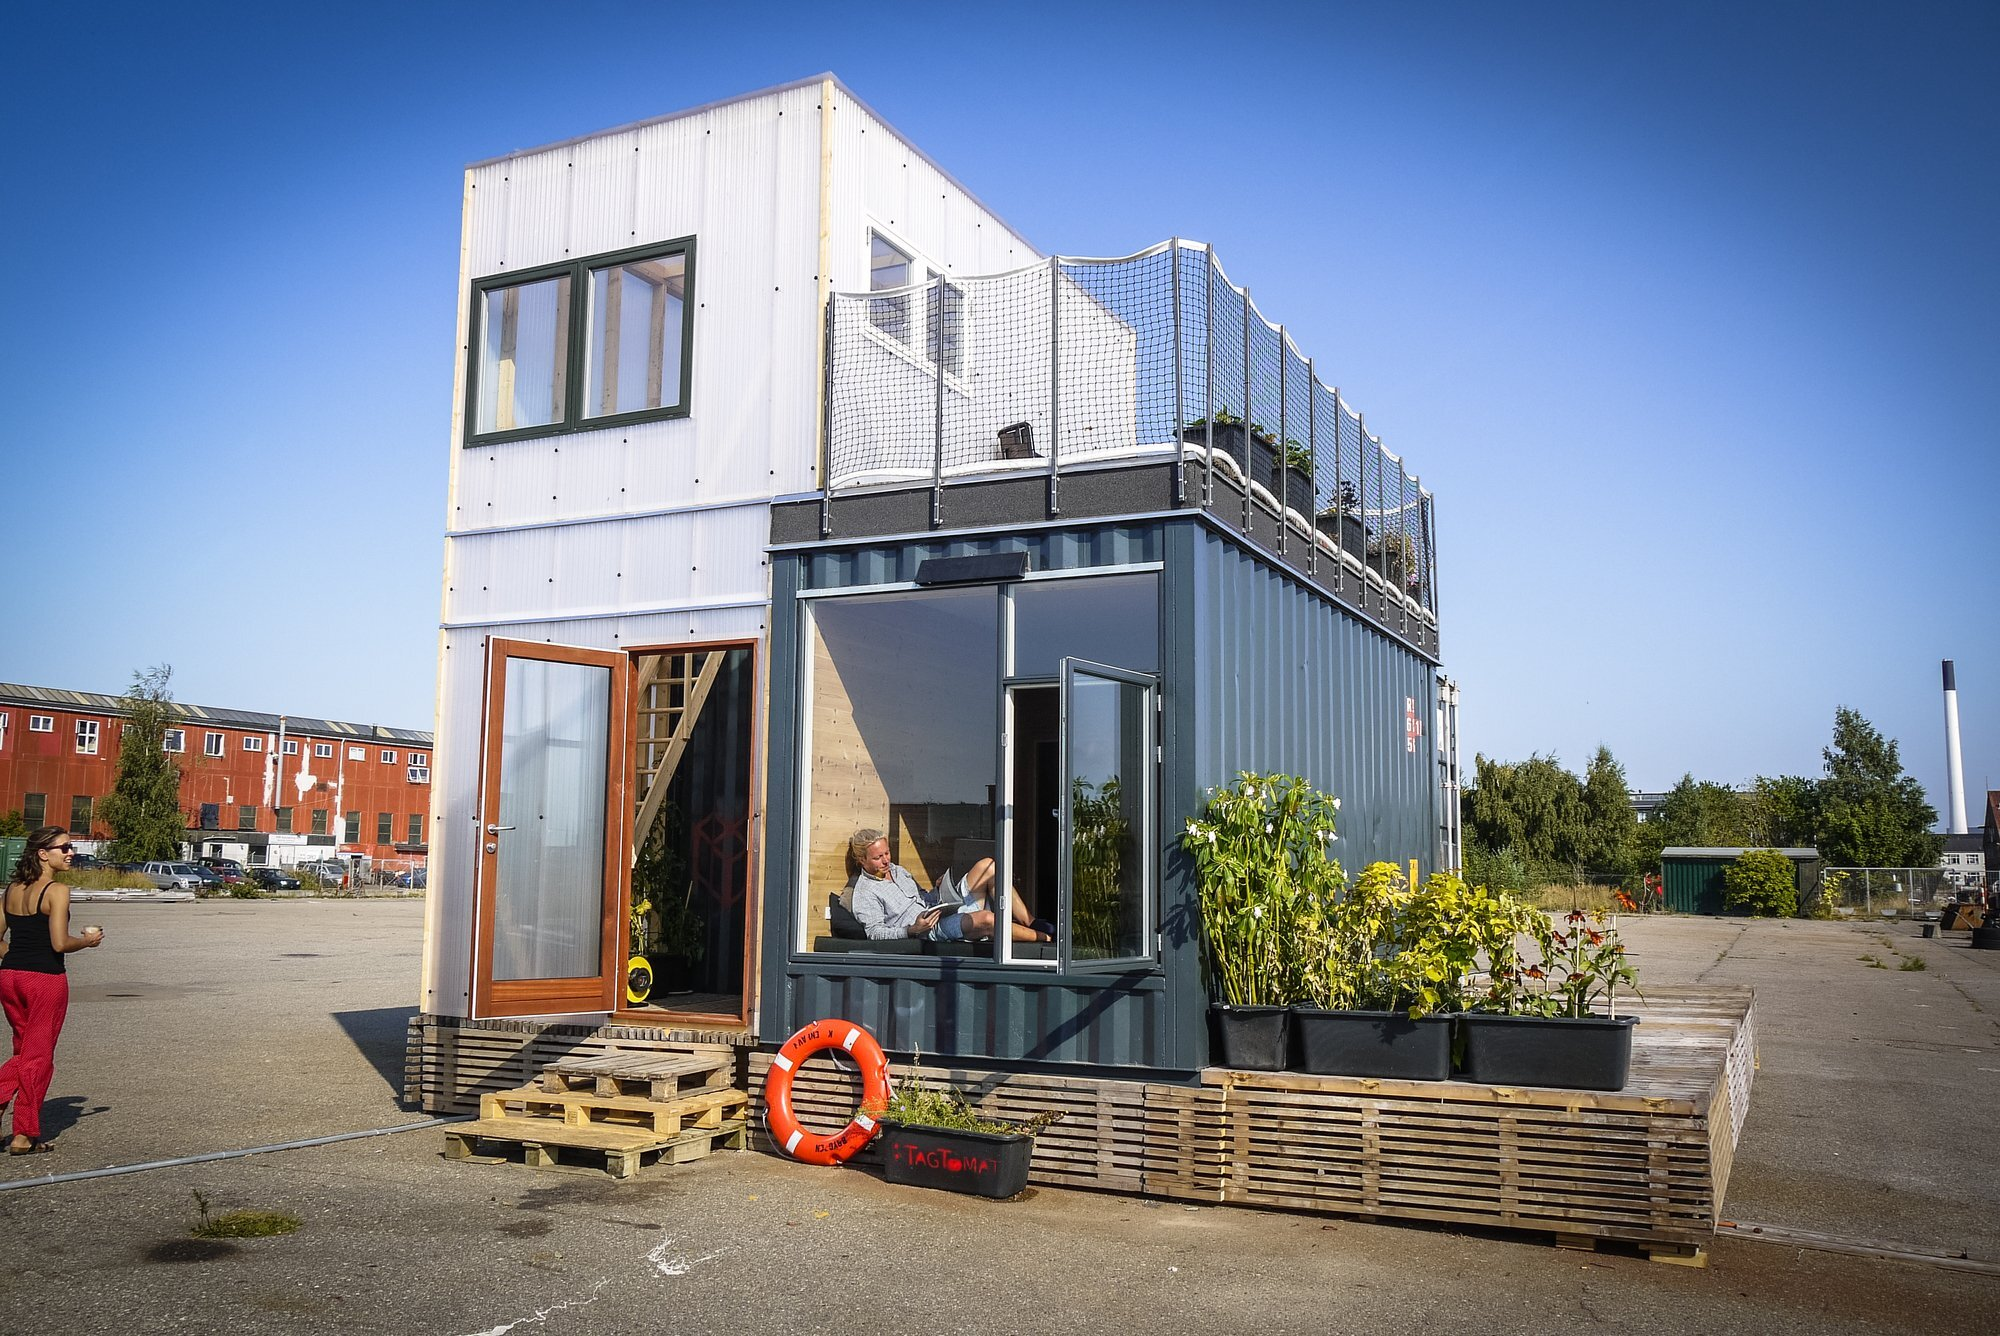 a student village made of container homes in copenhagencph